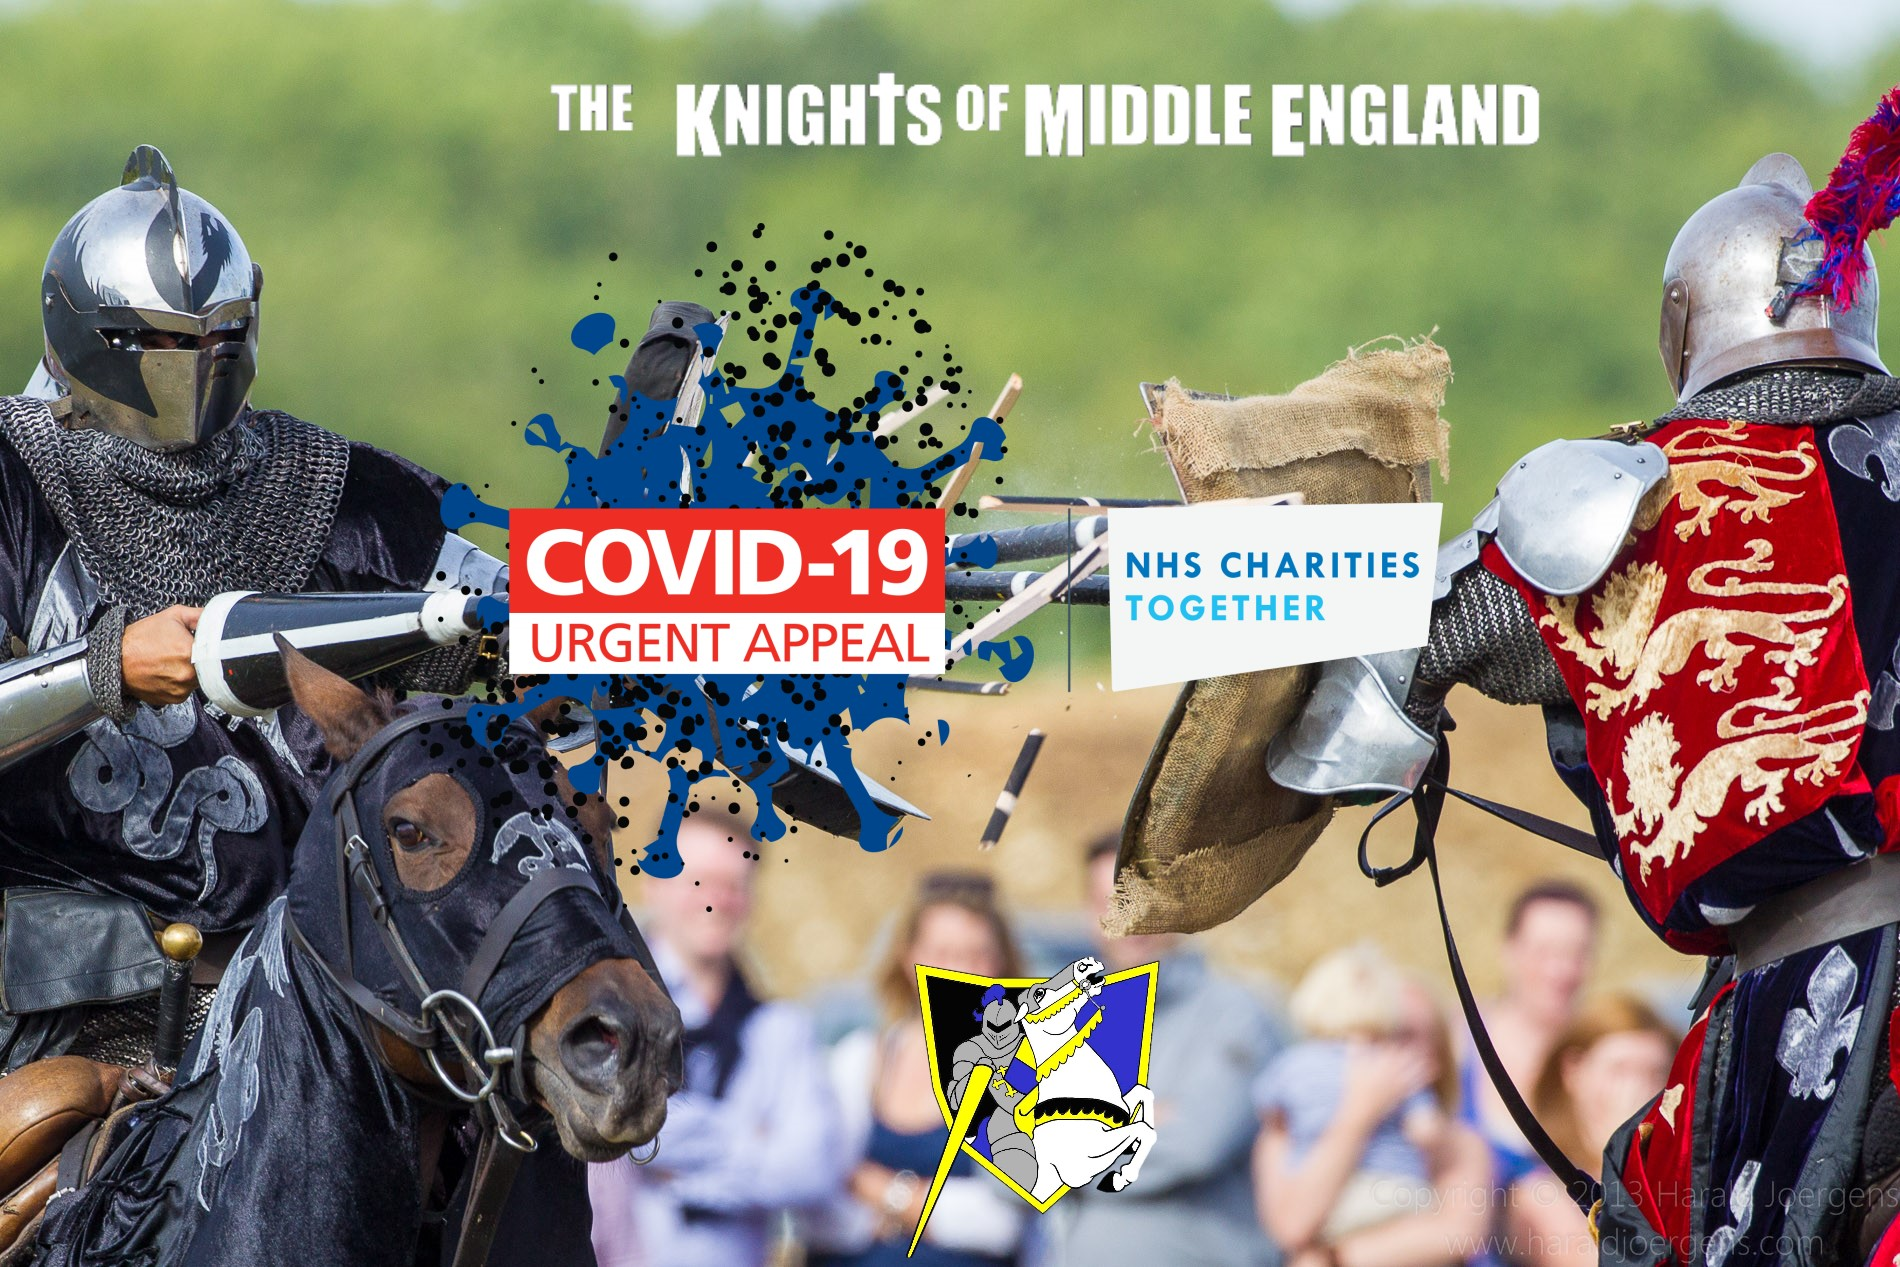 The Knights of Middle England are Supporting NHS Charities COVID-19 Urgent Appeal